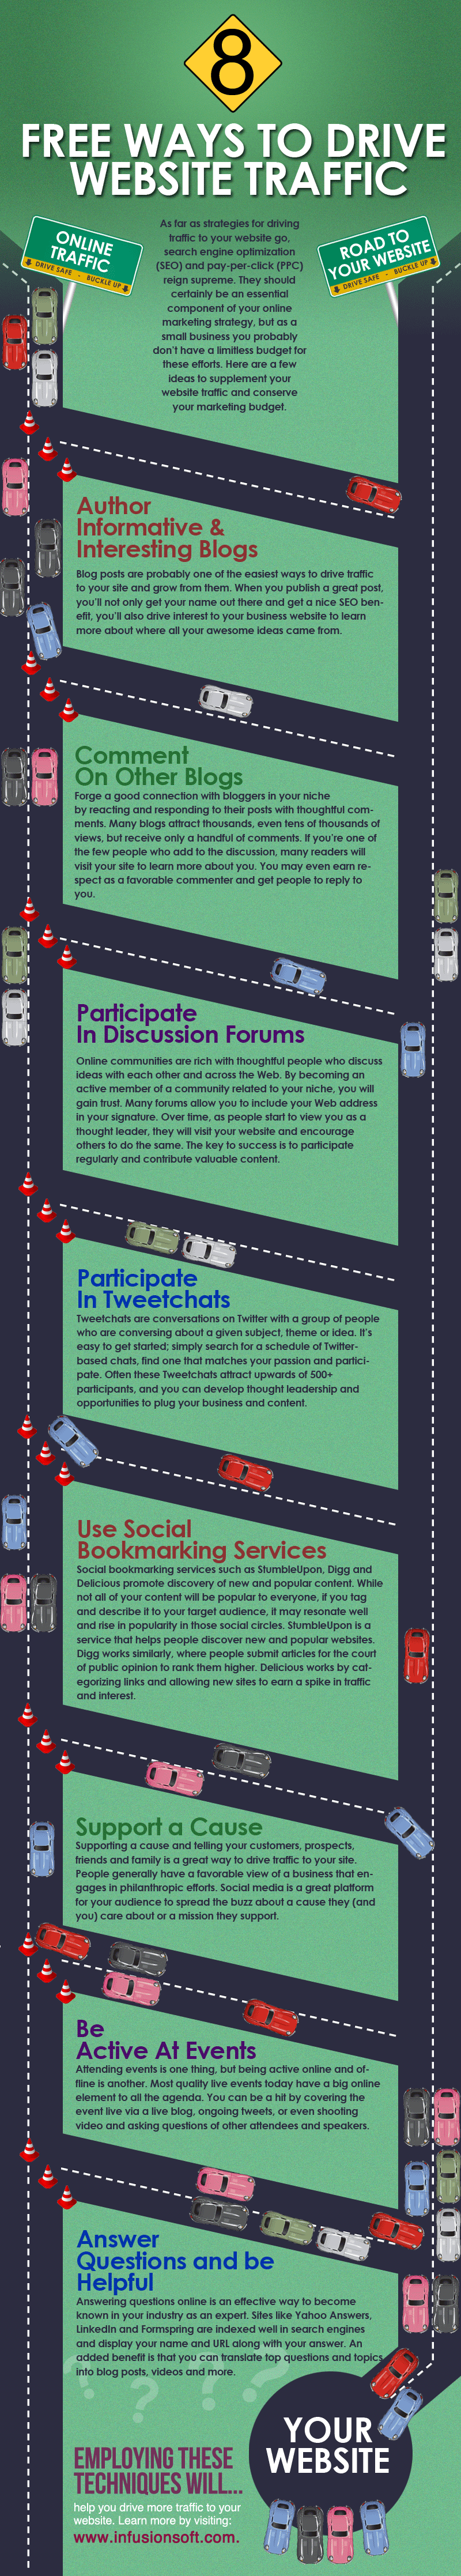 8 free ways to drive website traffic #infographic